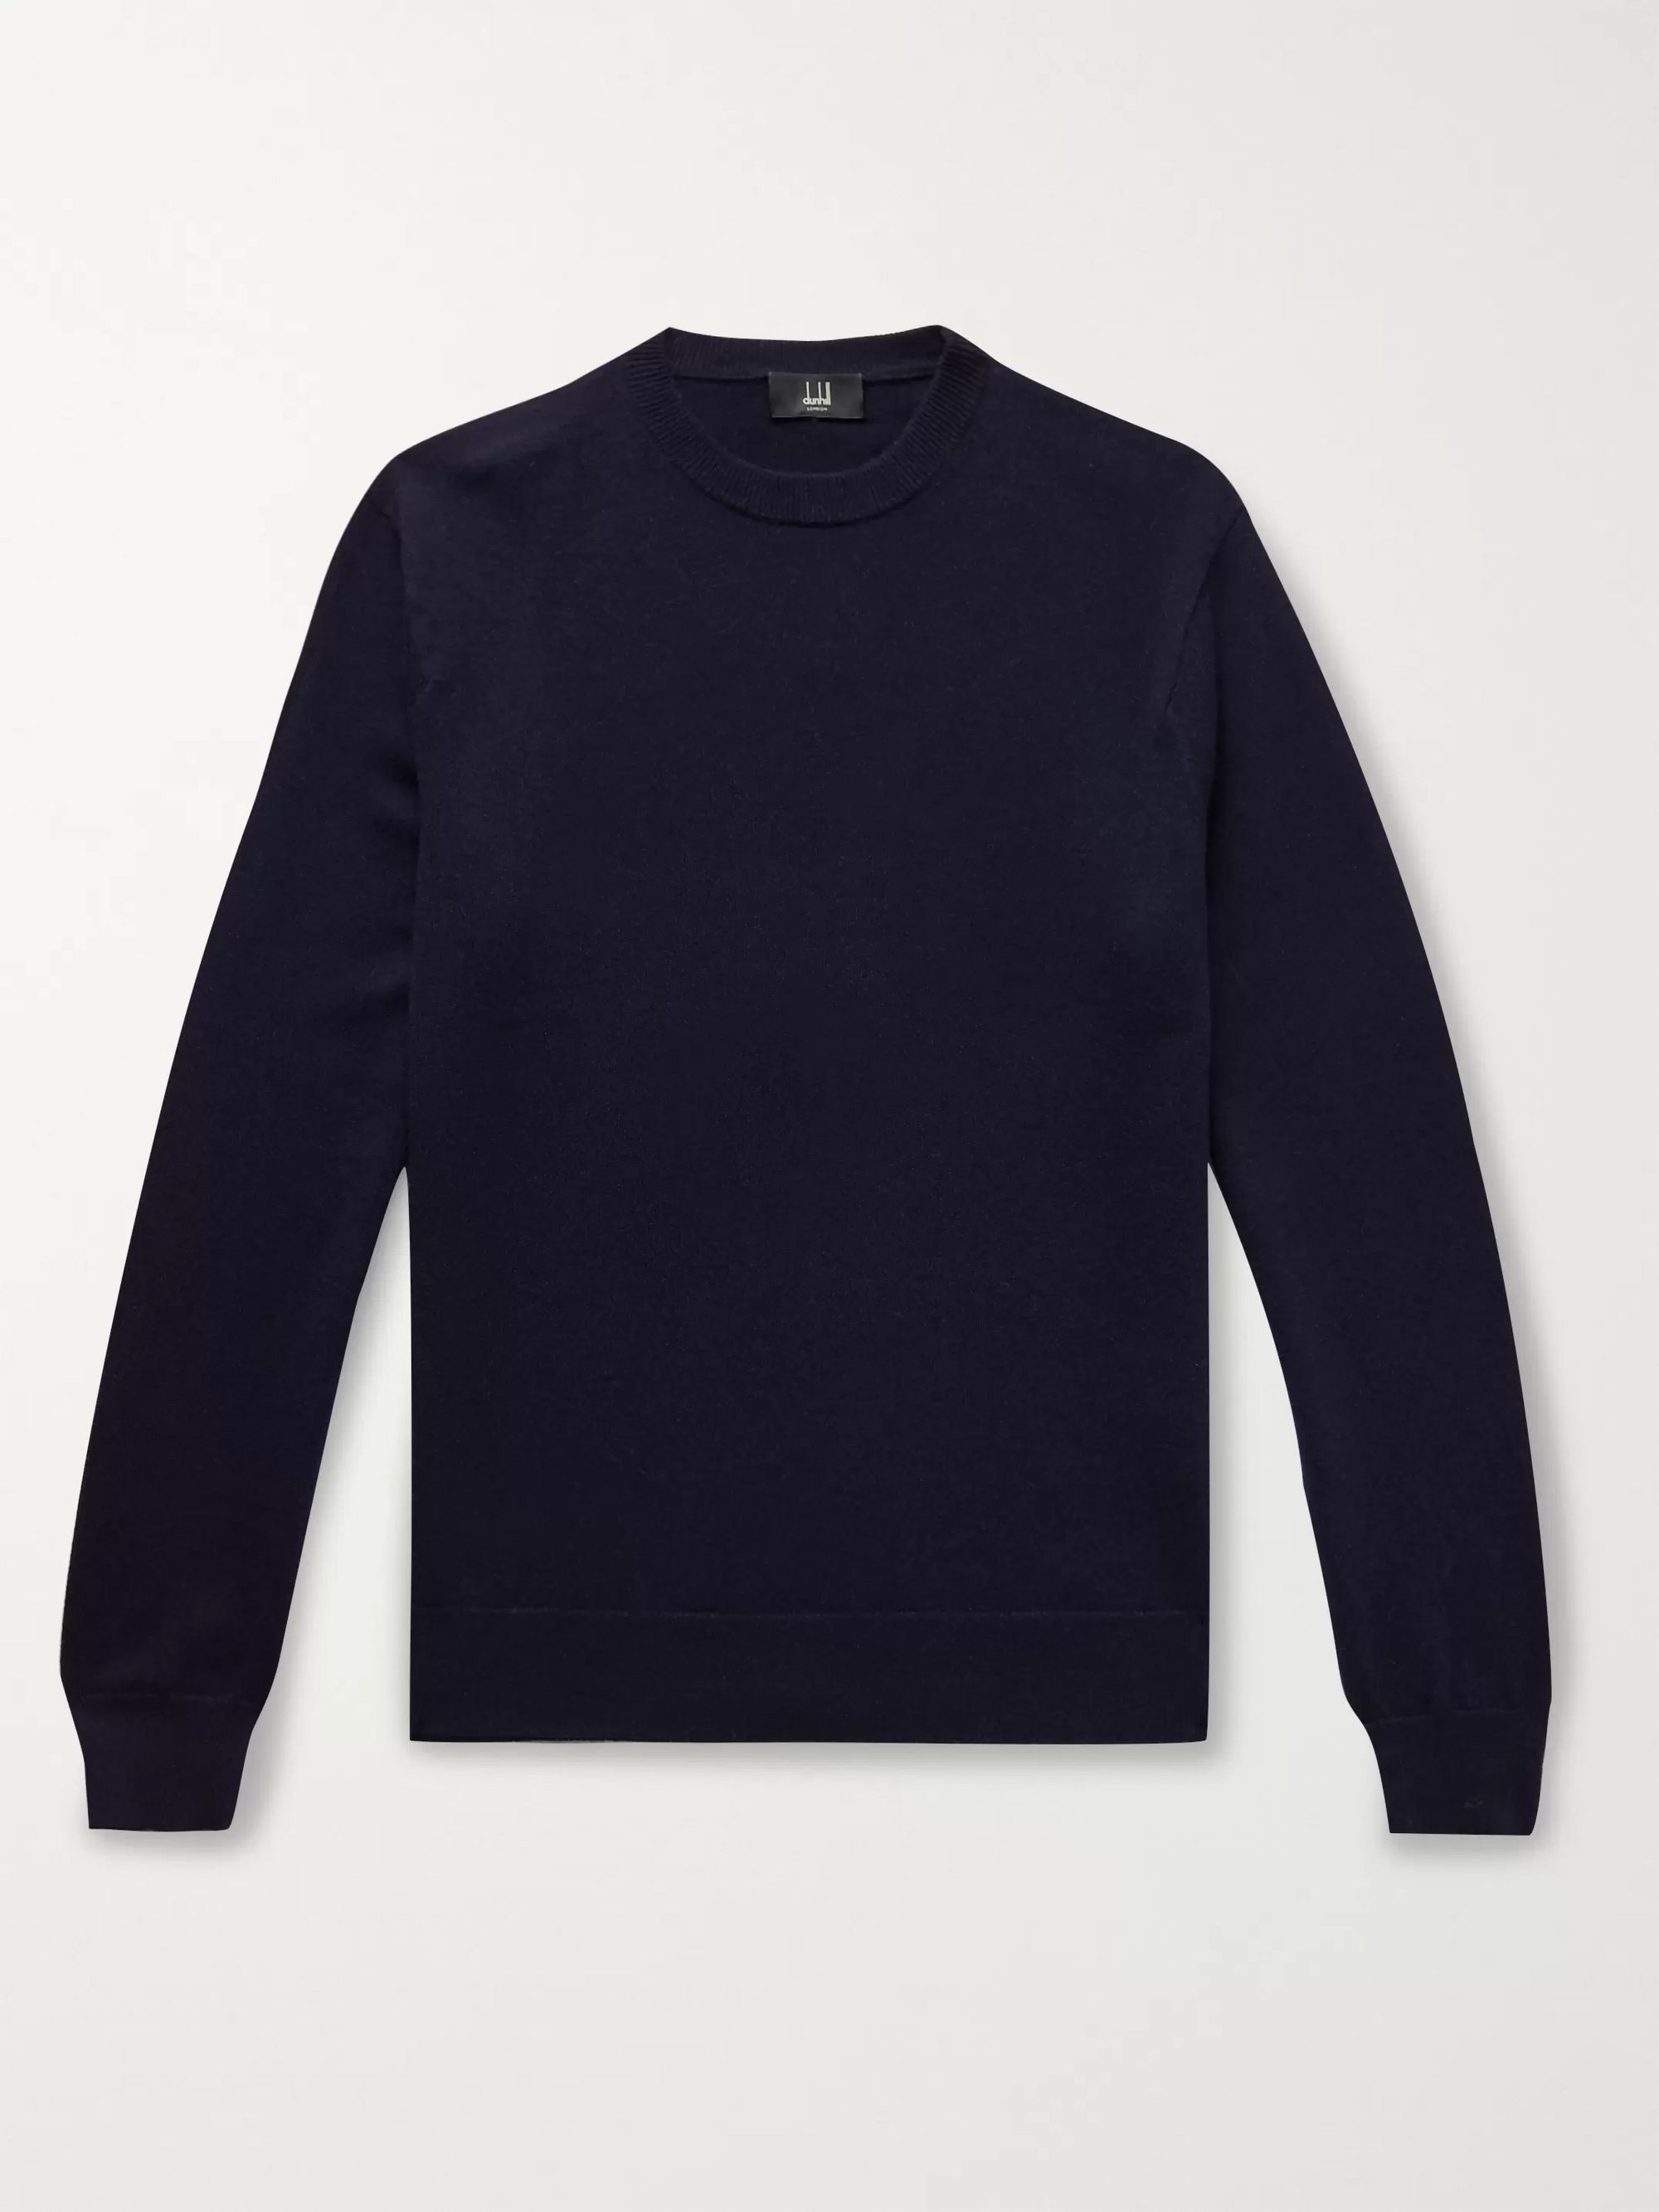 Dunhill Cashmere Sweater